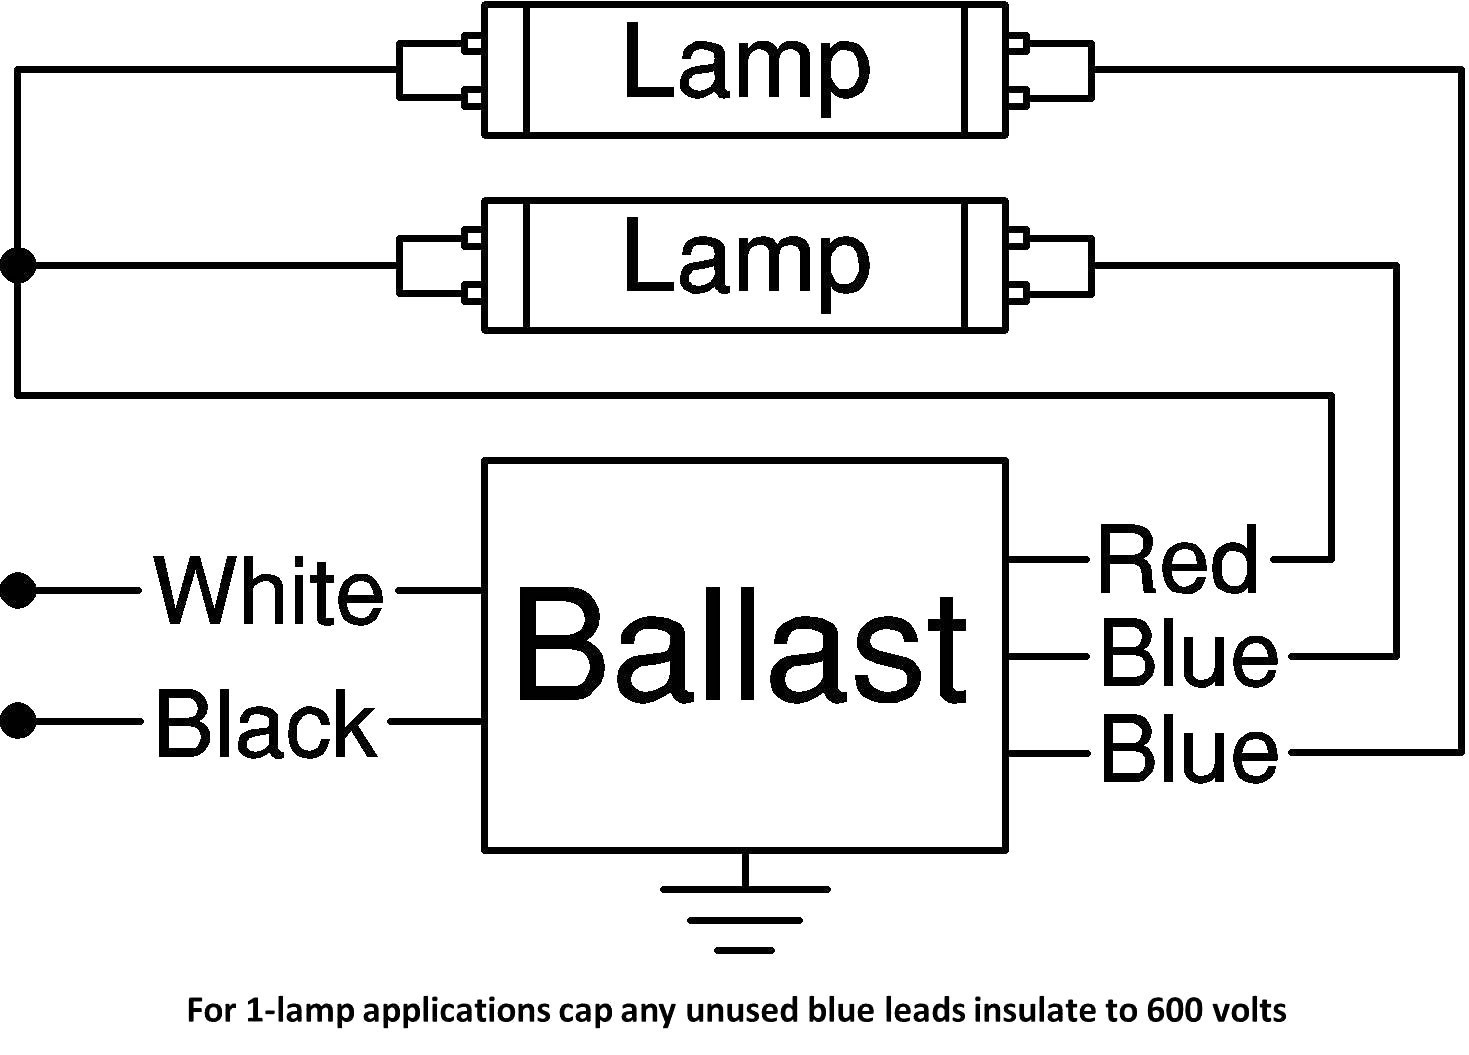 Rapid Start Ballast Diagrams Wiring Diagram Libraries Lamp 1 Get Free Image About F40t12 Nice Place To U2022f40t12 For You U2022 Rh Stardrop Store